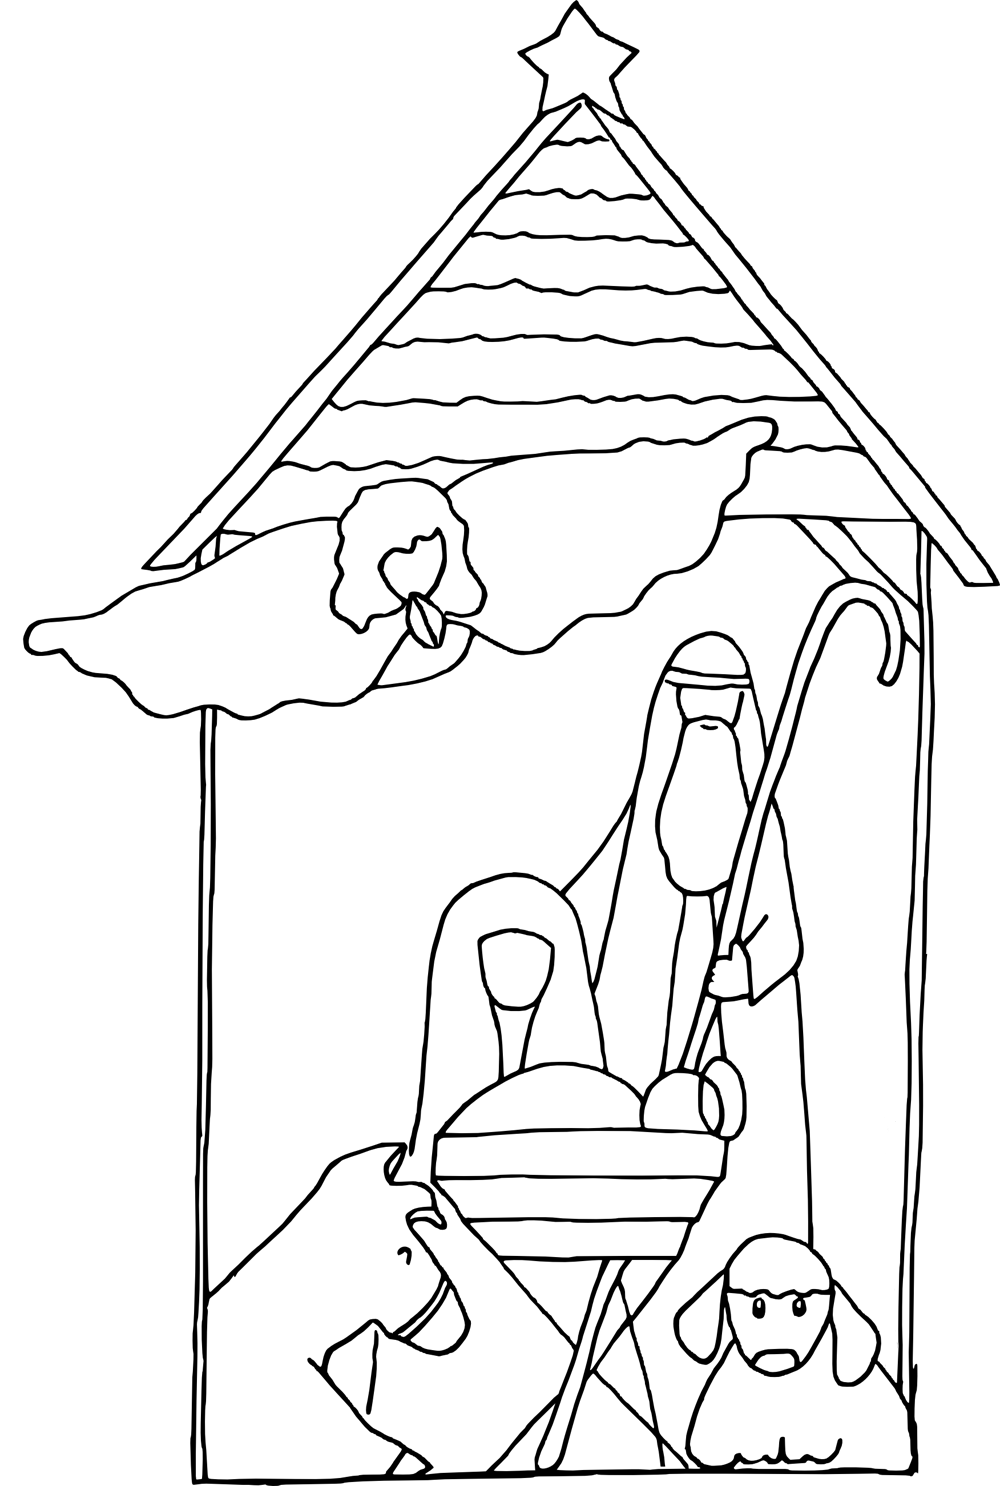 free coloring pages jesus baby jesus coloring pages best coloring pages for kids jesus coloring pages free